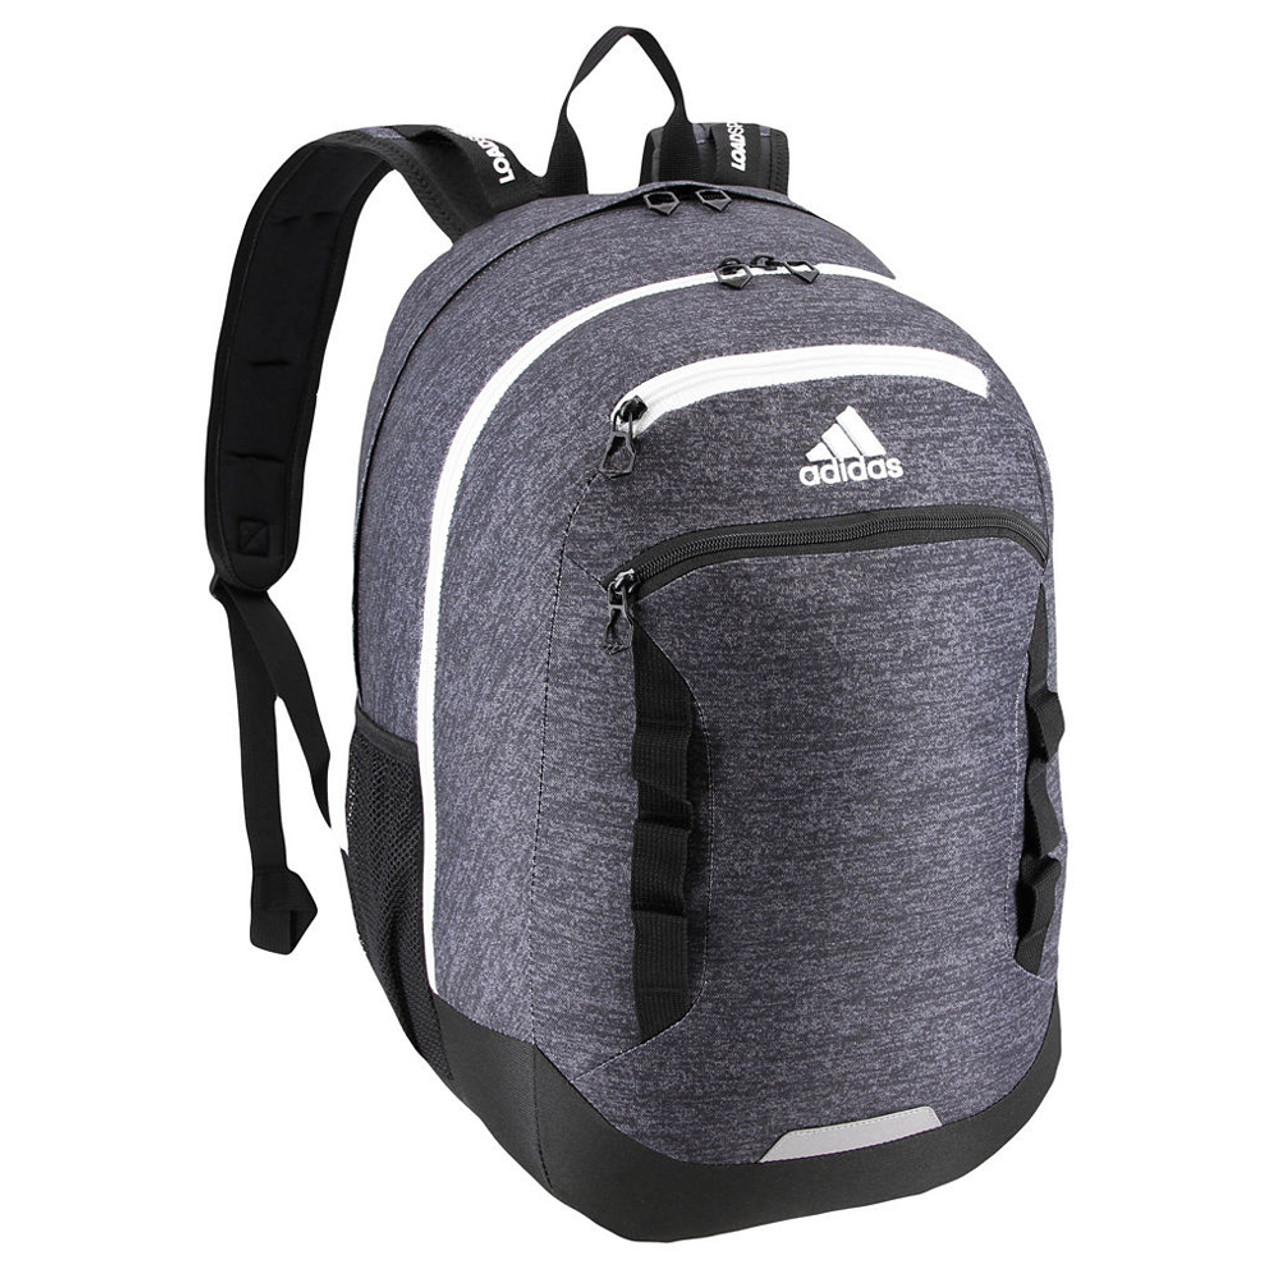 Adidas Excel III Backpack Black Jersey/Neo White/Black